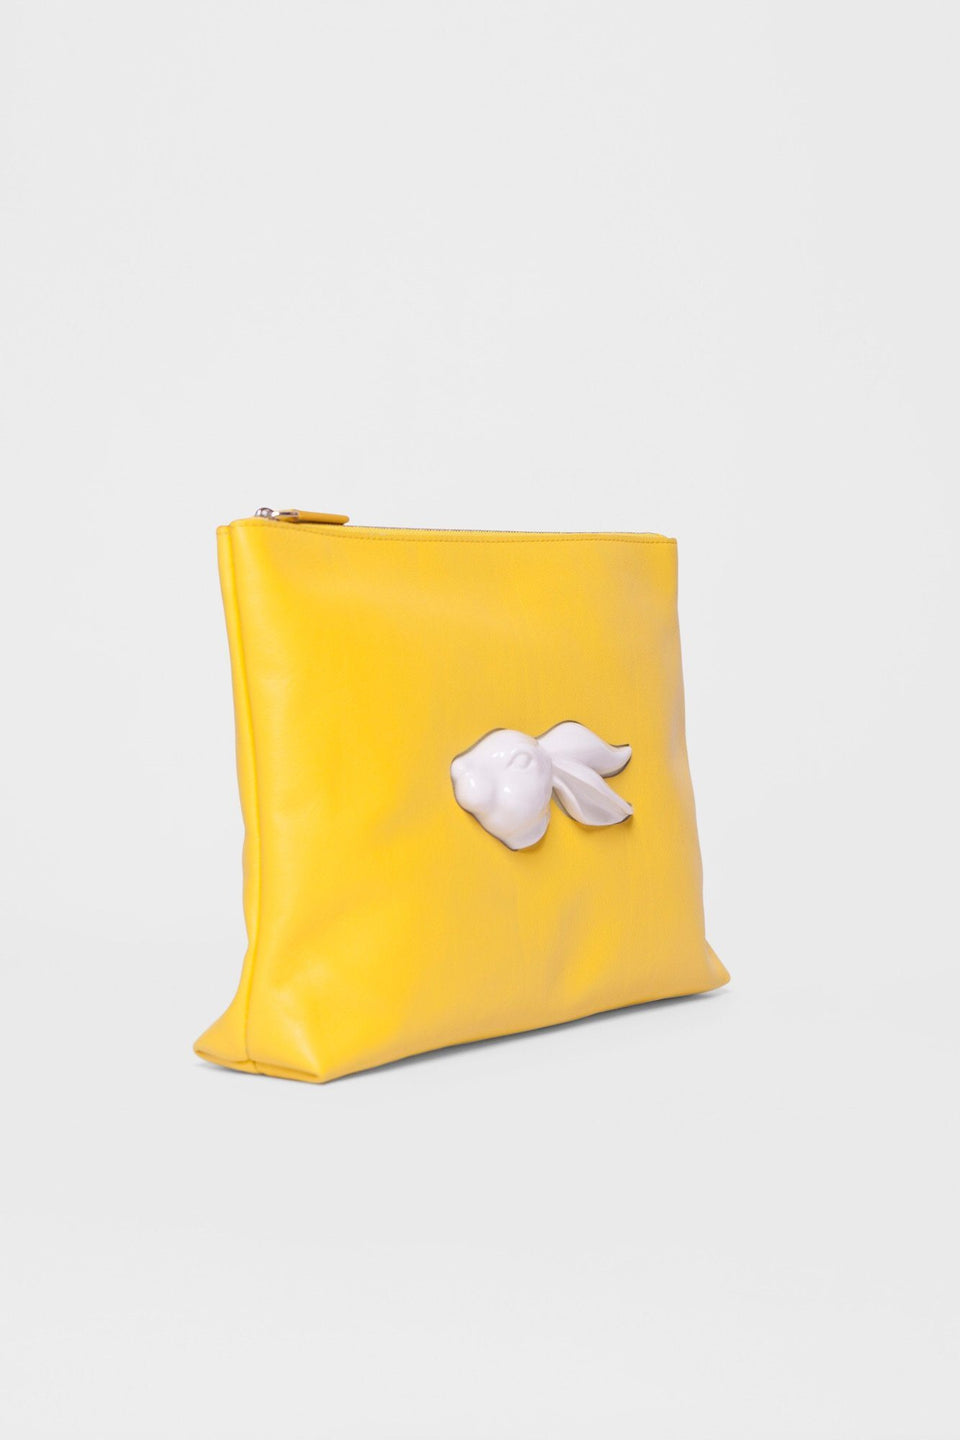 Pouch Rabbit Head Yellow Handbag Andres Gallardo - der ZEITGEIST